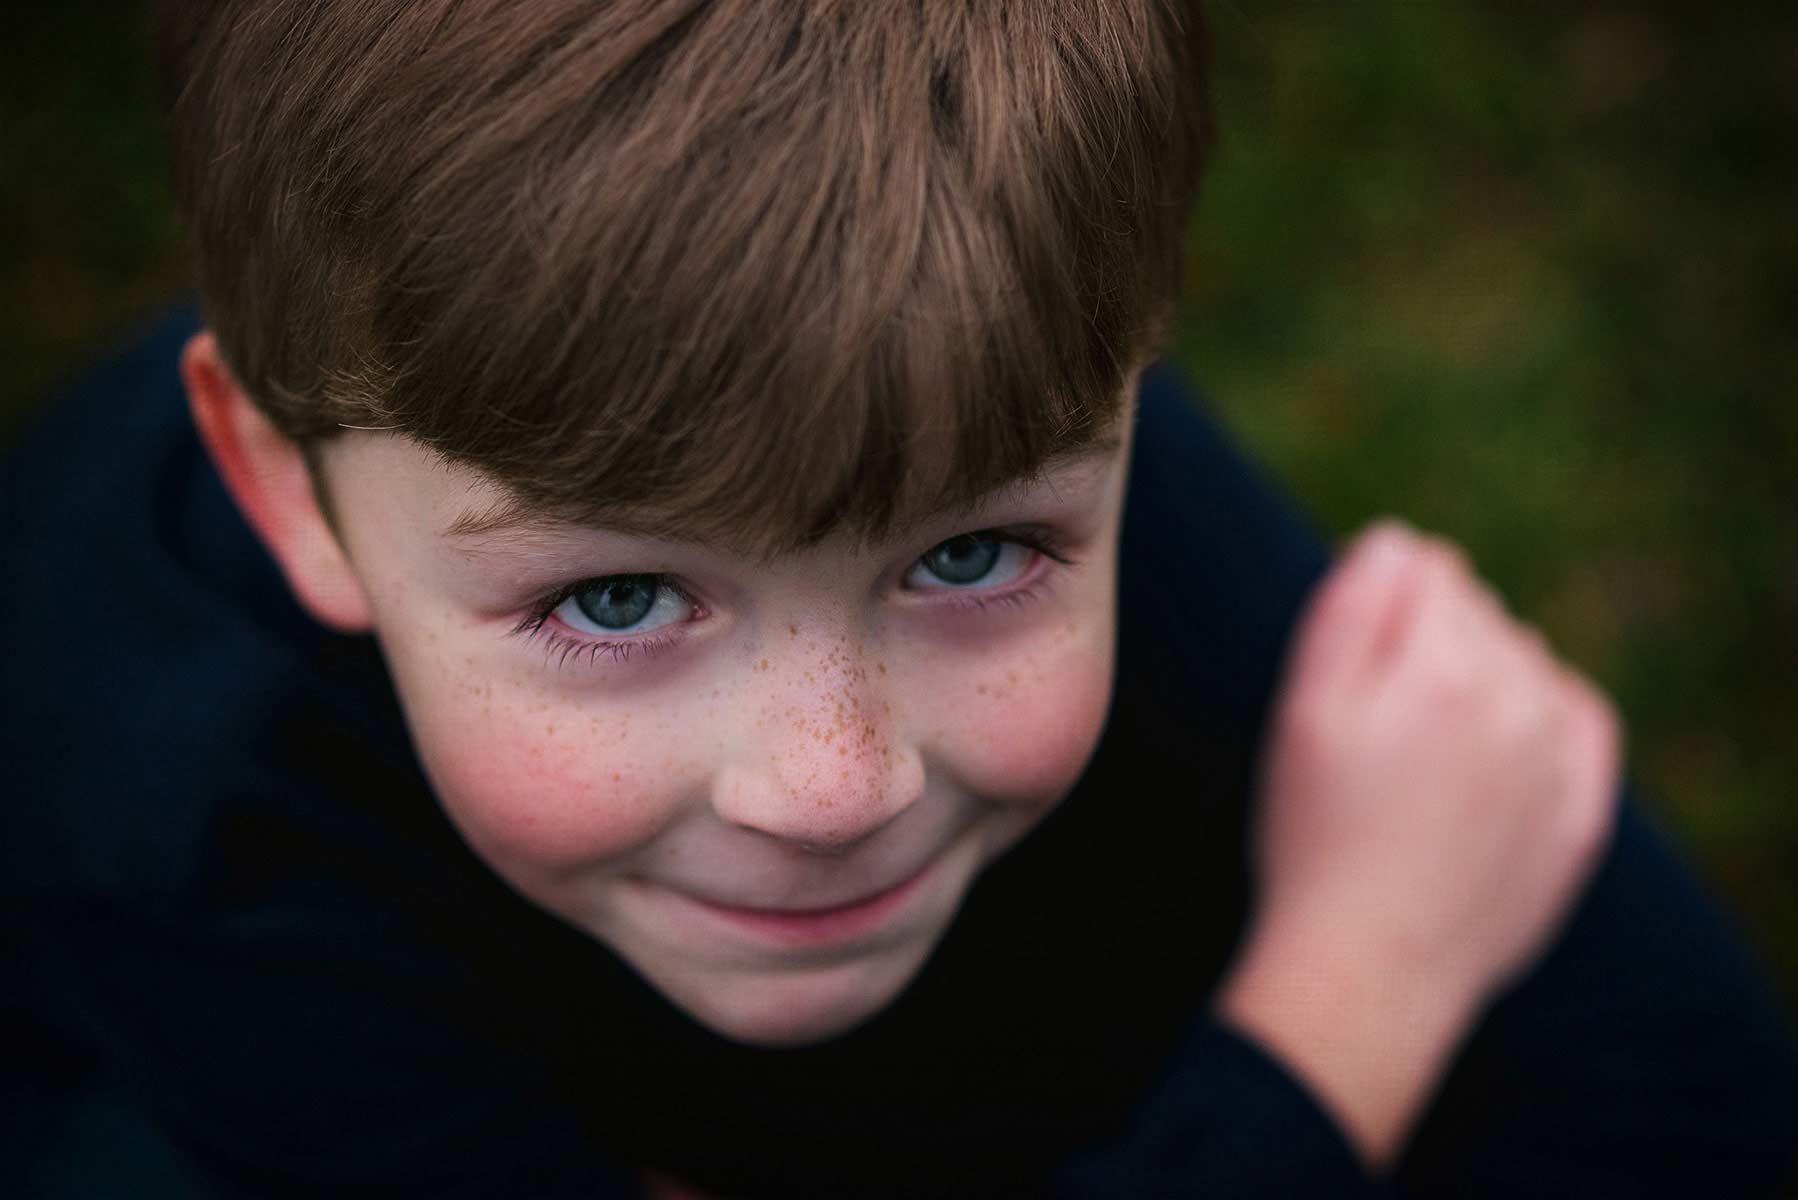 Young red-headed boy smiling at the camera